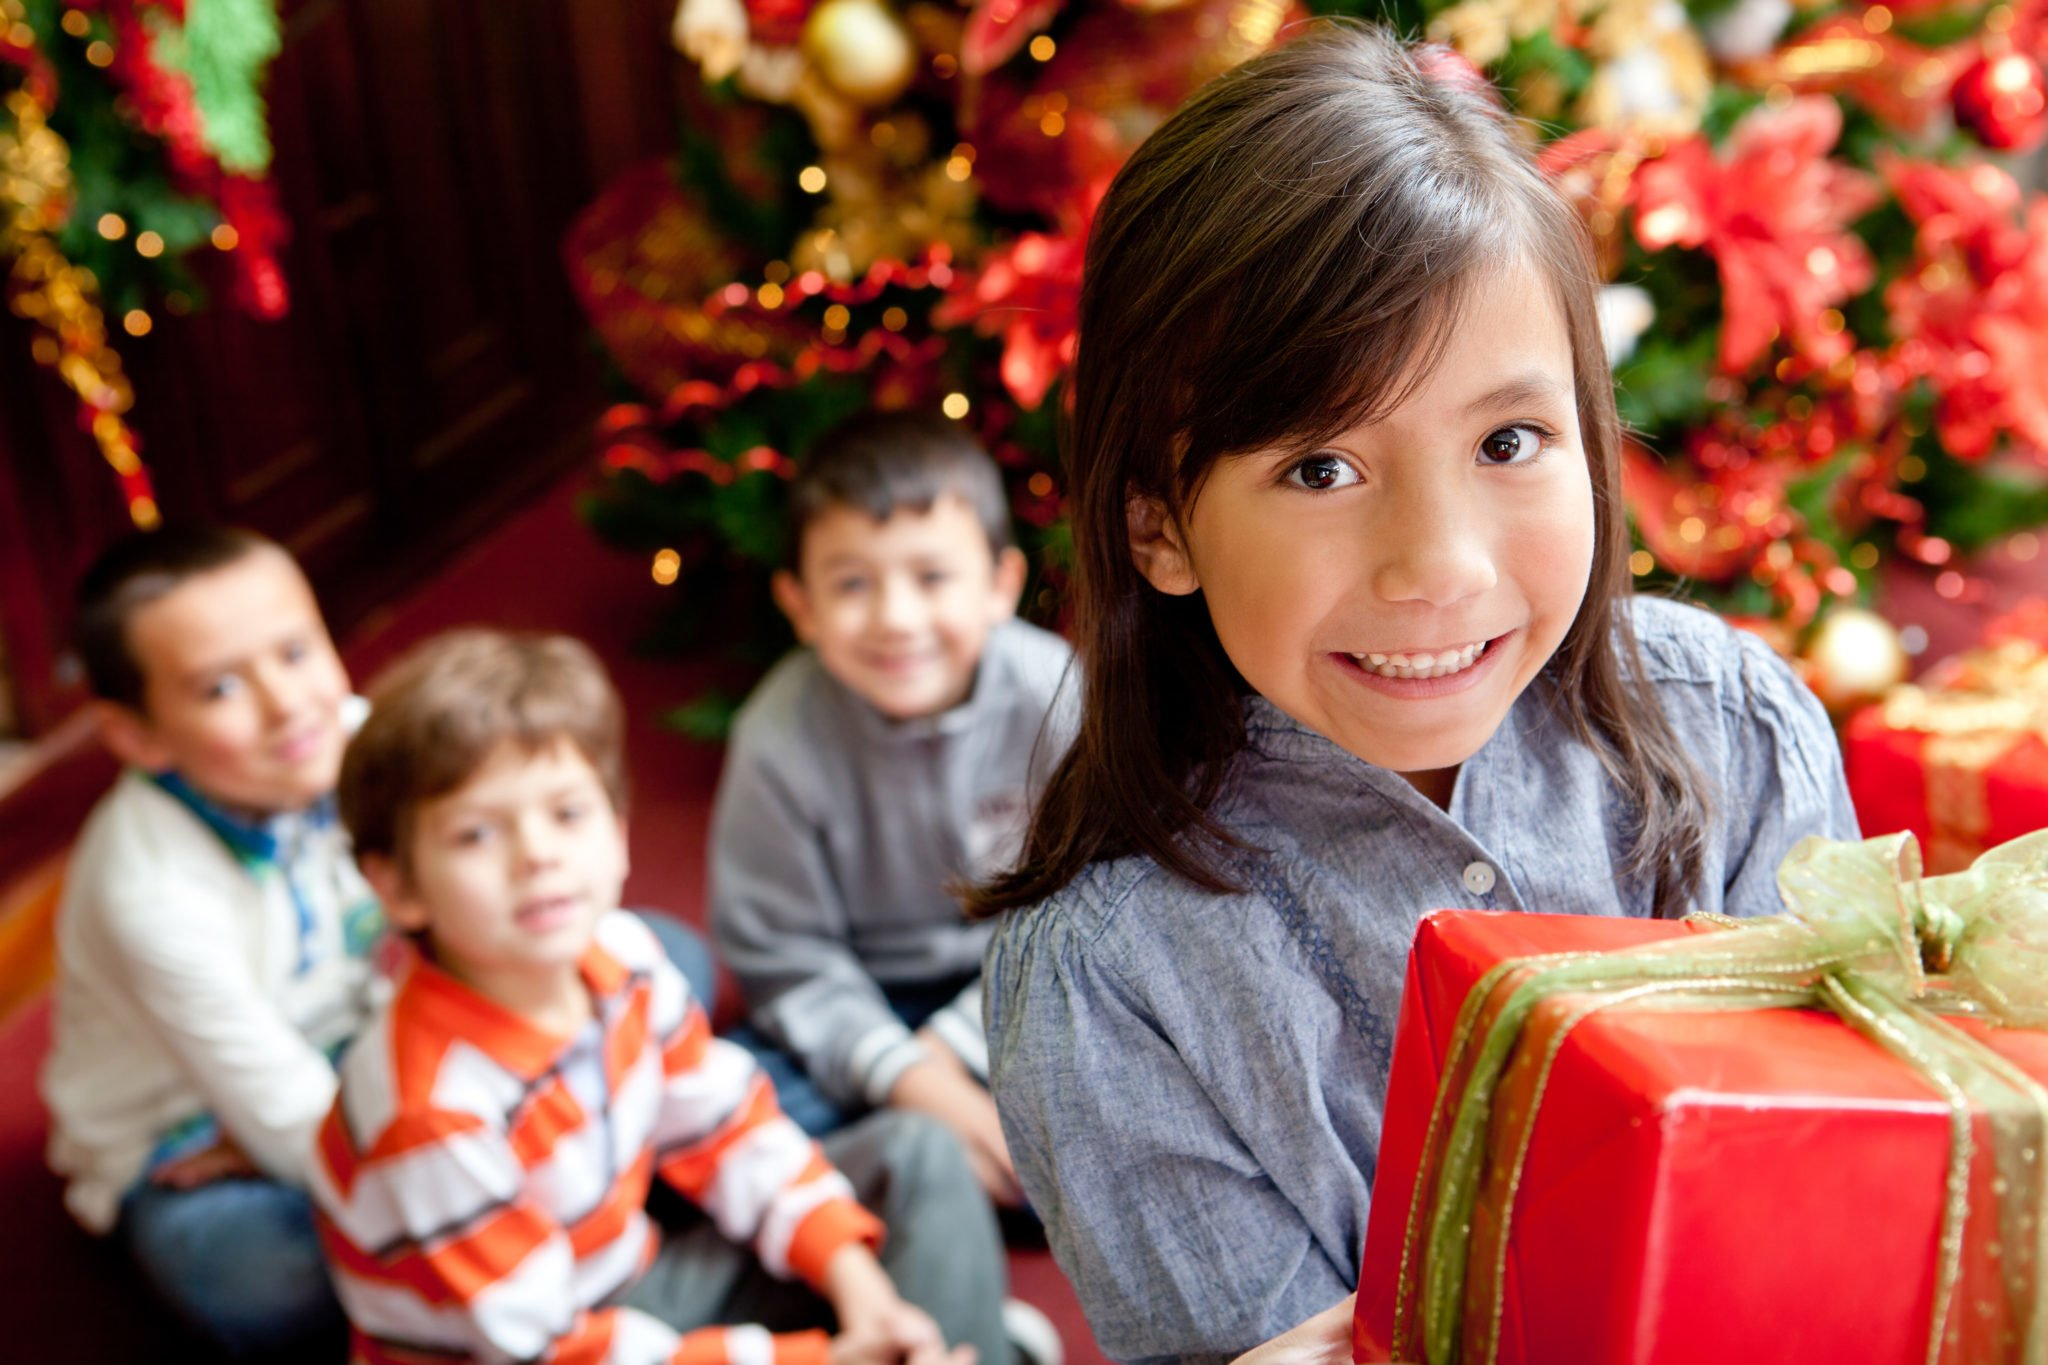 adopt a local family who needs your help this holiday season